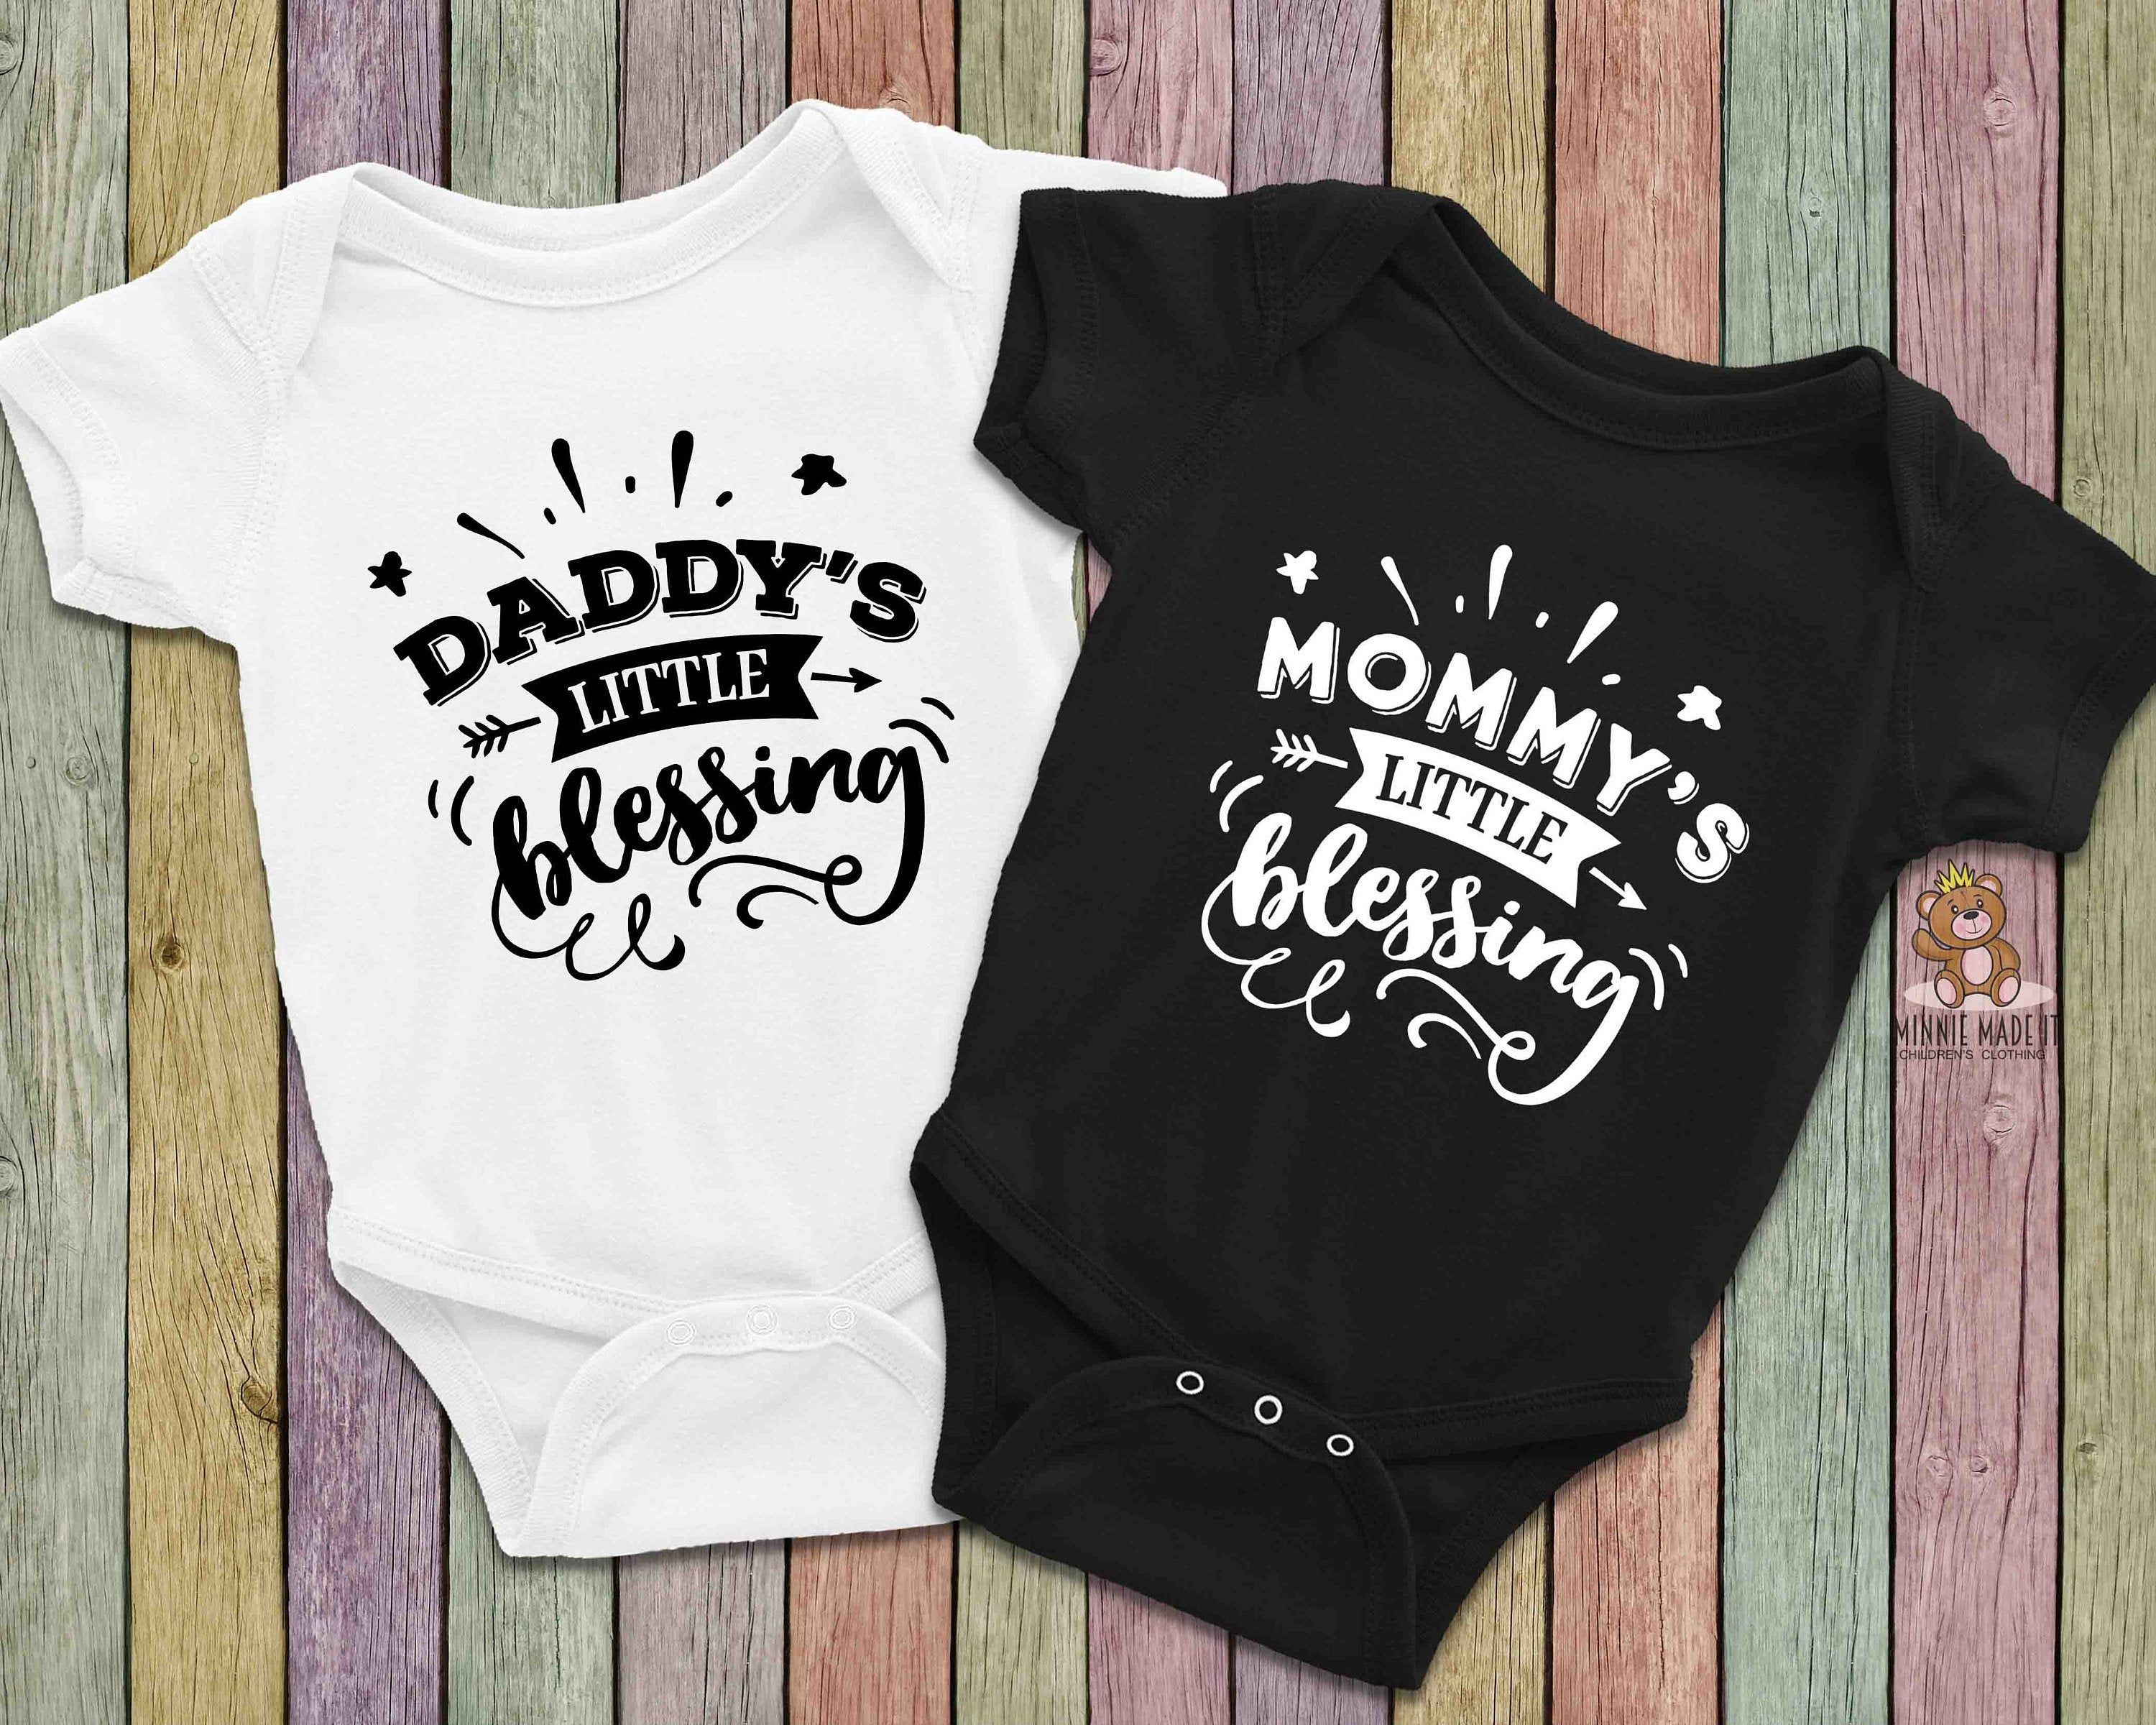 Coming Home Boy Girl Infant Matching Family Tee Shirts Newborn Fall Shower Gift For New Mom Cute Baby Shark Onesie Mommy And Me Outfits